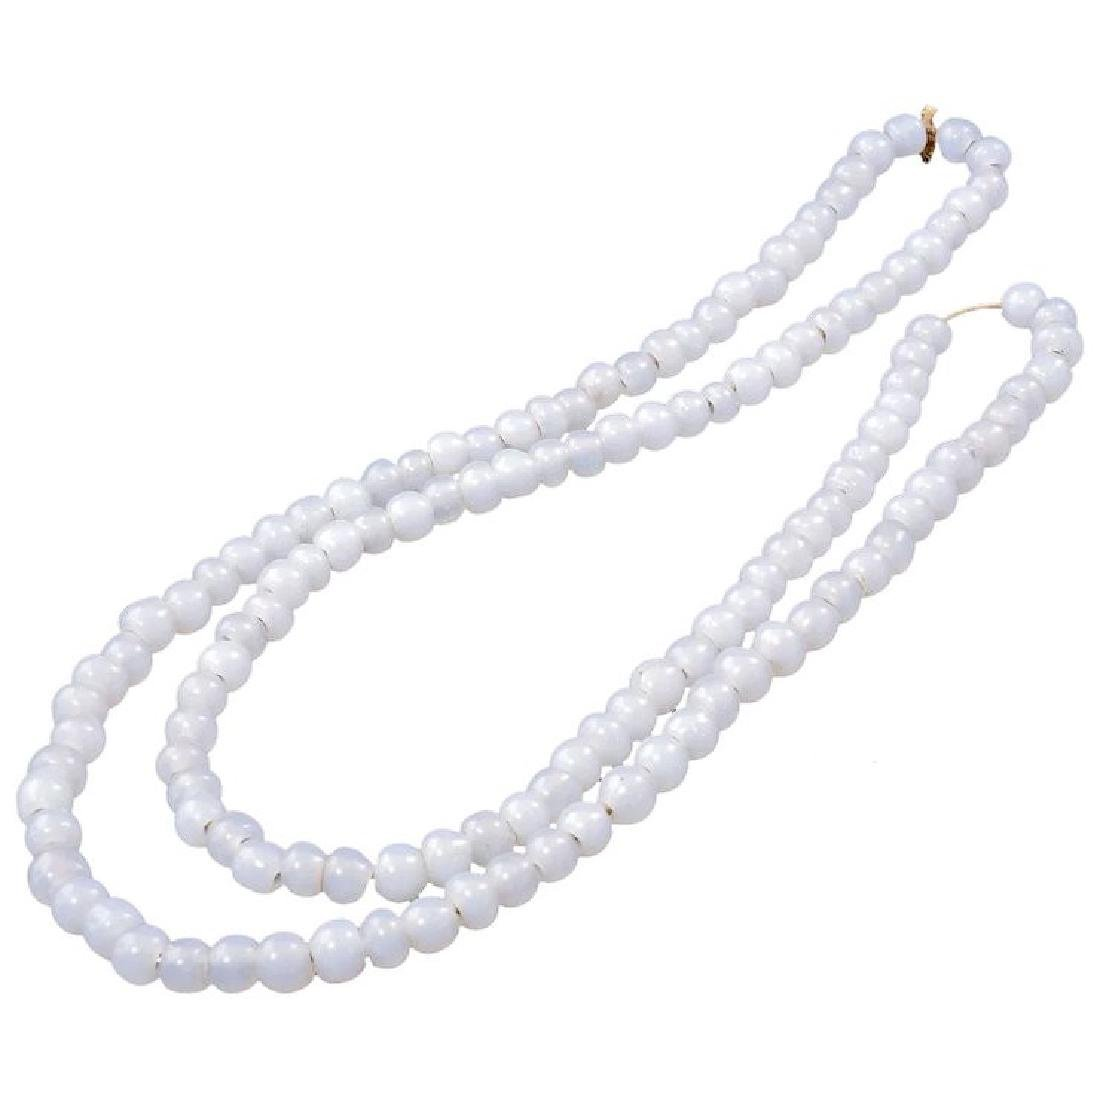 Chinese White Peking glass trade bead necklace on a